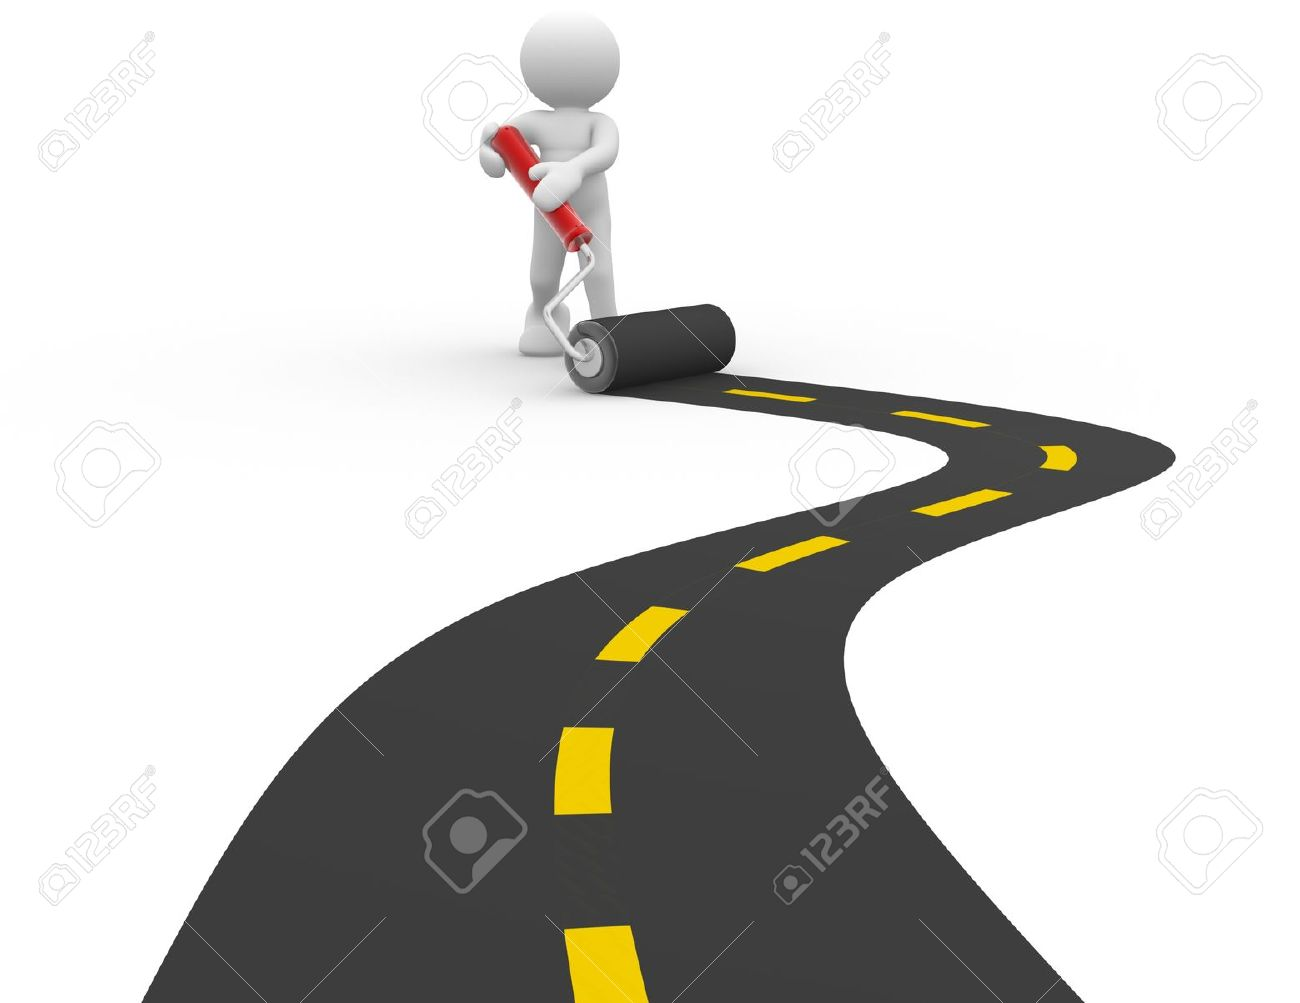 Paved road clipart.